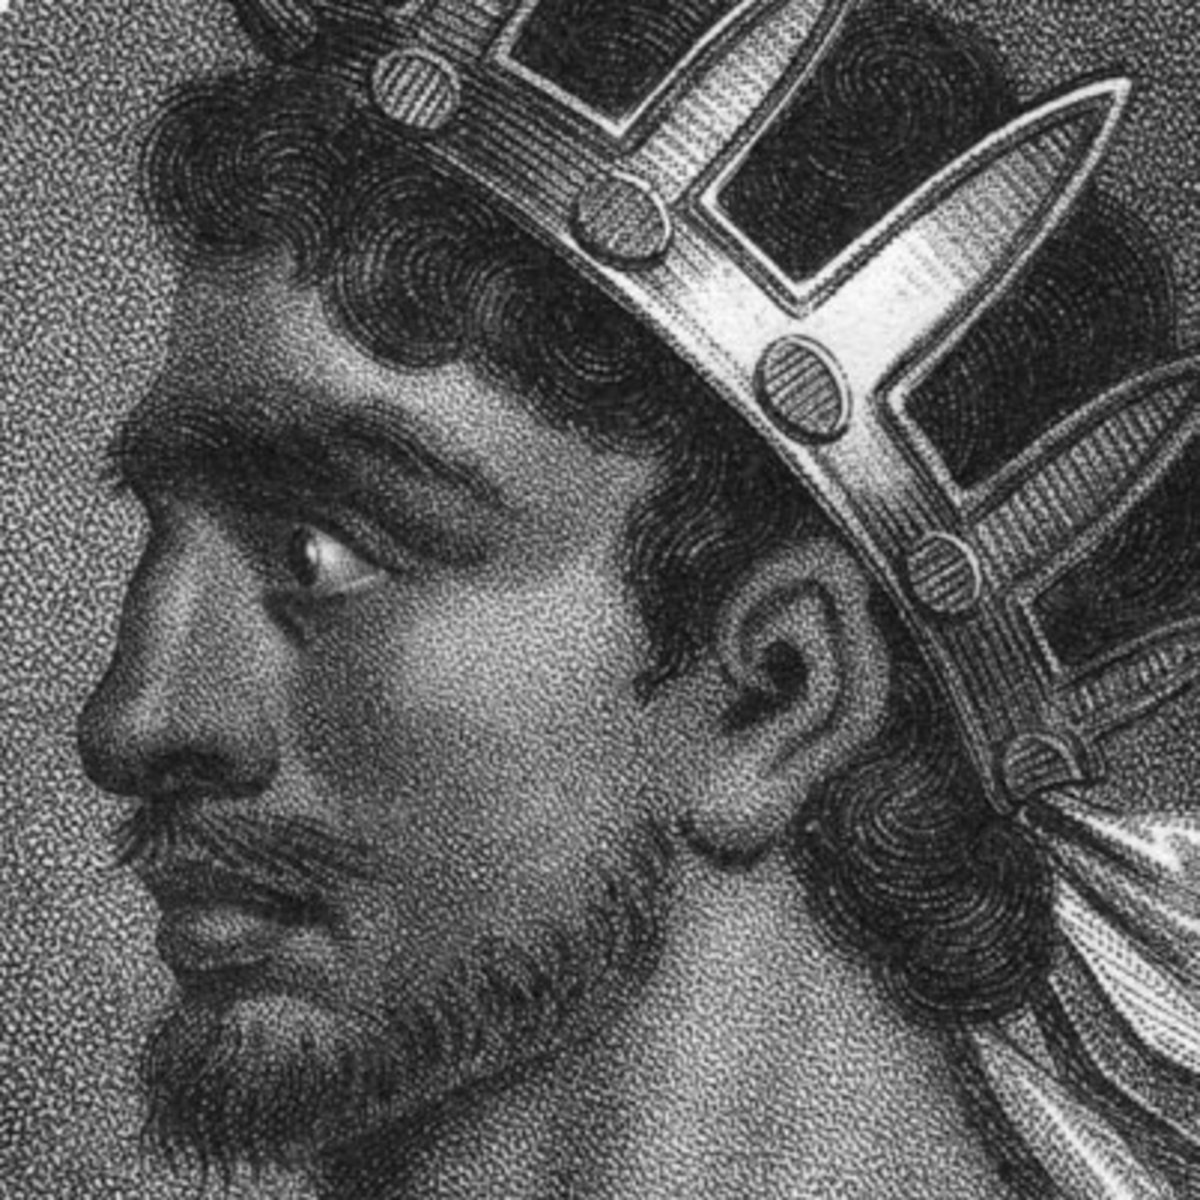 Attila the Hun – Powerful Military Leader who Brought Rome to its Knees